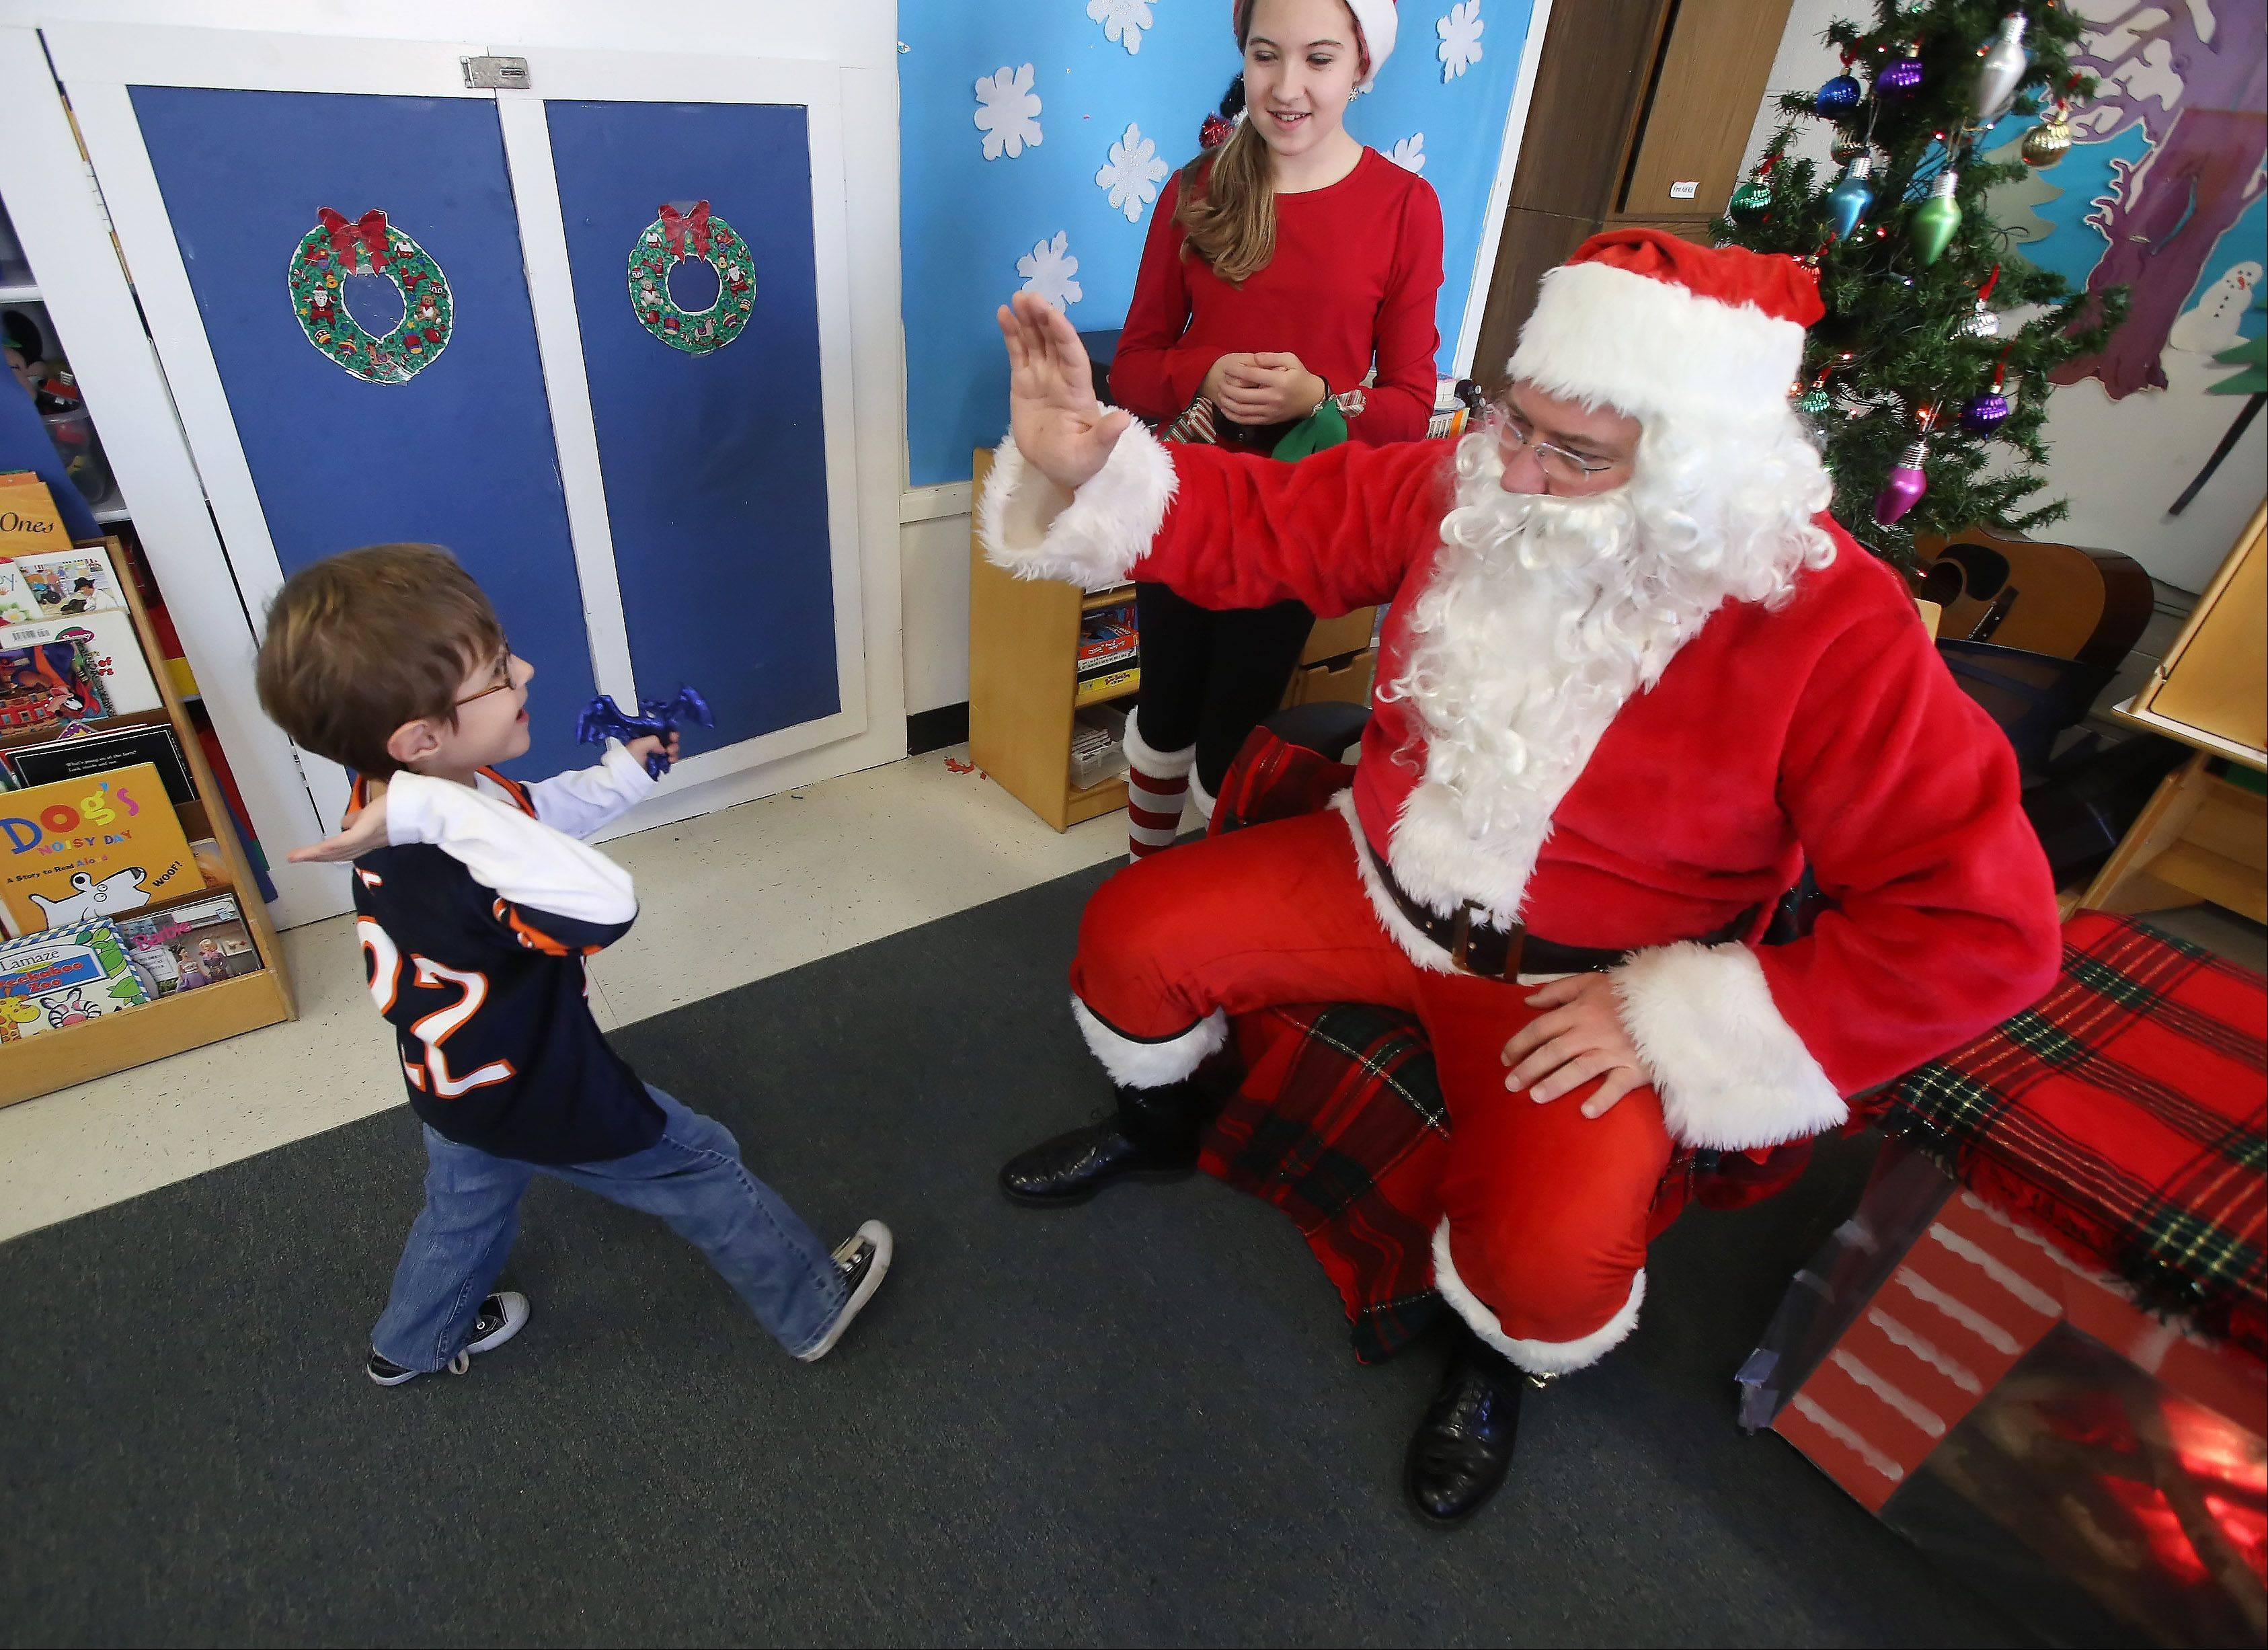 Five-year-old Conor Cook of Prairie Grove gives Santa Claus (Island Lake Trustee Keith Johns) a high-five Sunday during Island Lake's 27th annual Holiday Craft Fair. The fair featured almost 45 vendors offering crafts, jewelry, gifts, clothing and more.